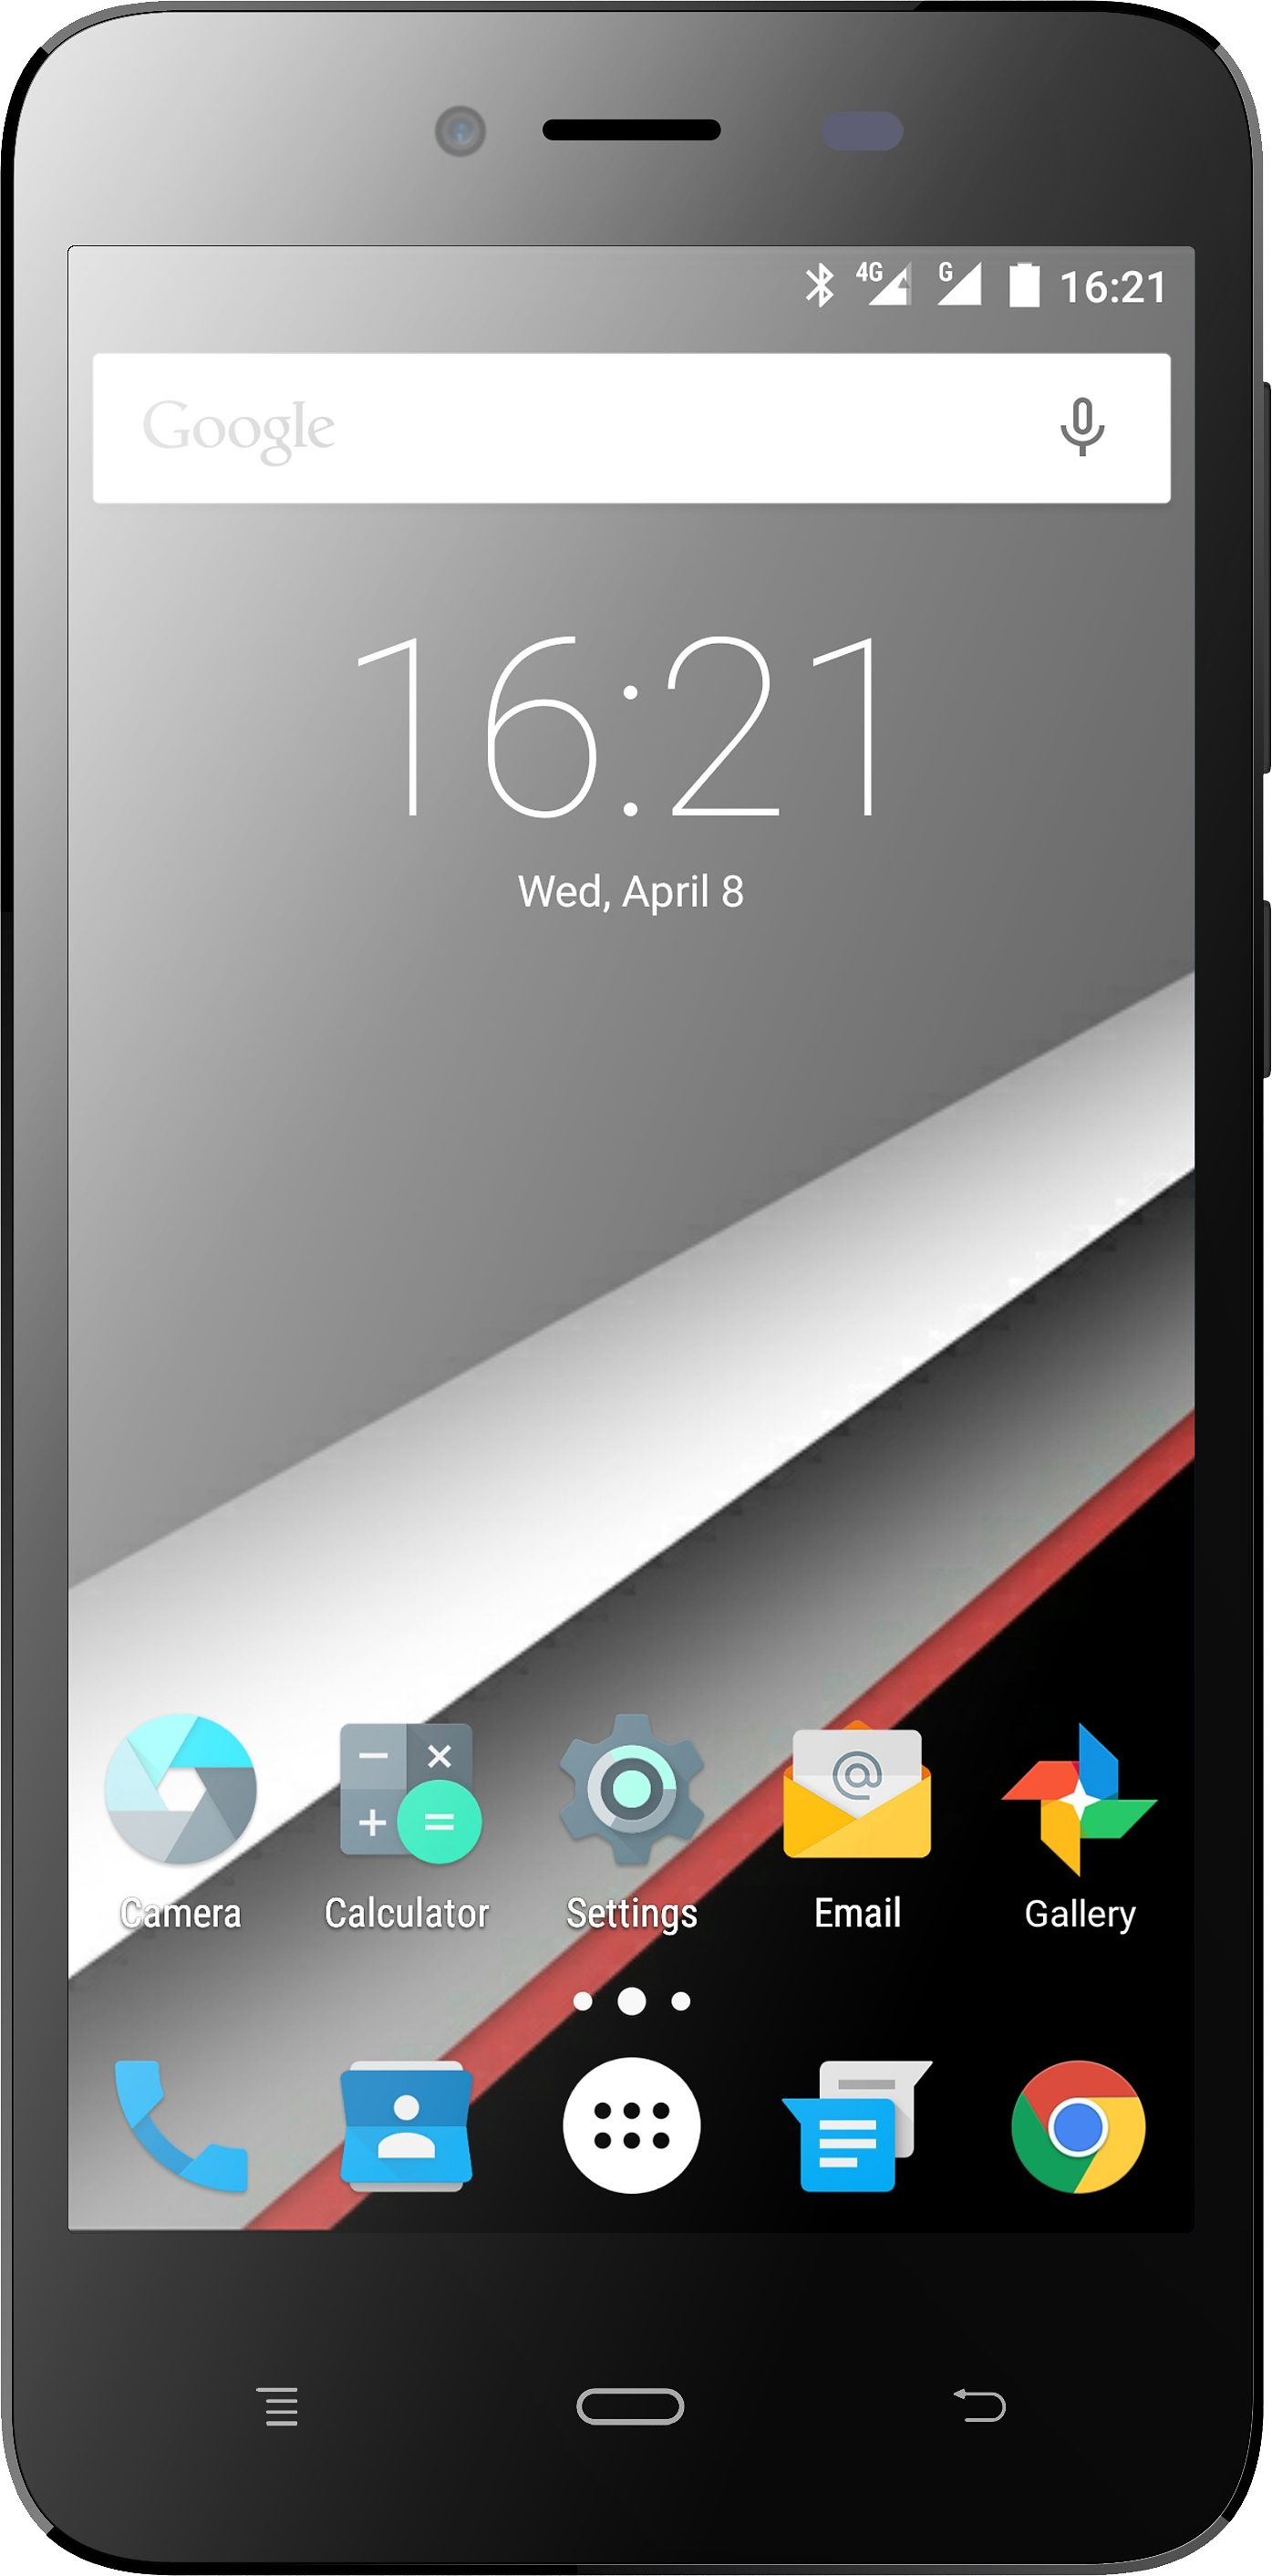 Phicomm Energy L Smartphone, 12,7 cm (5 Zoll) Display, LTE (4G), Android 5.1 Lollipop, 8,0 Megapixel